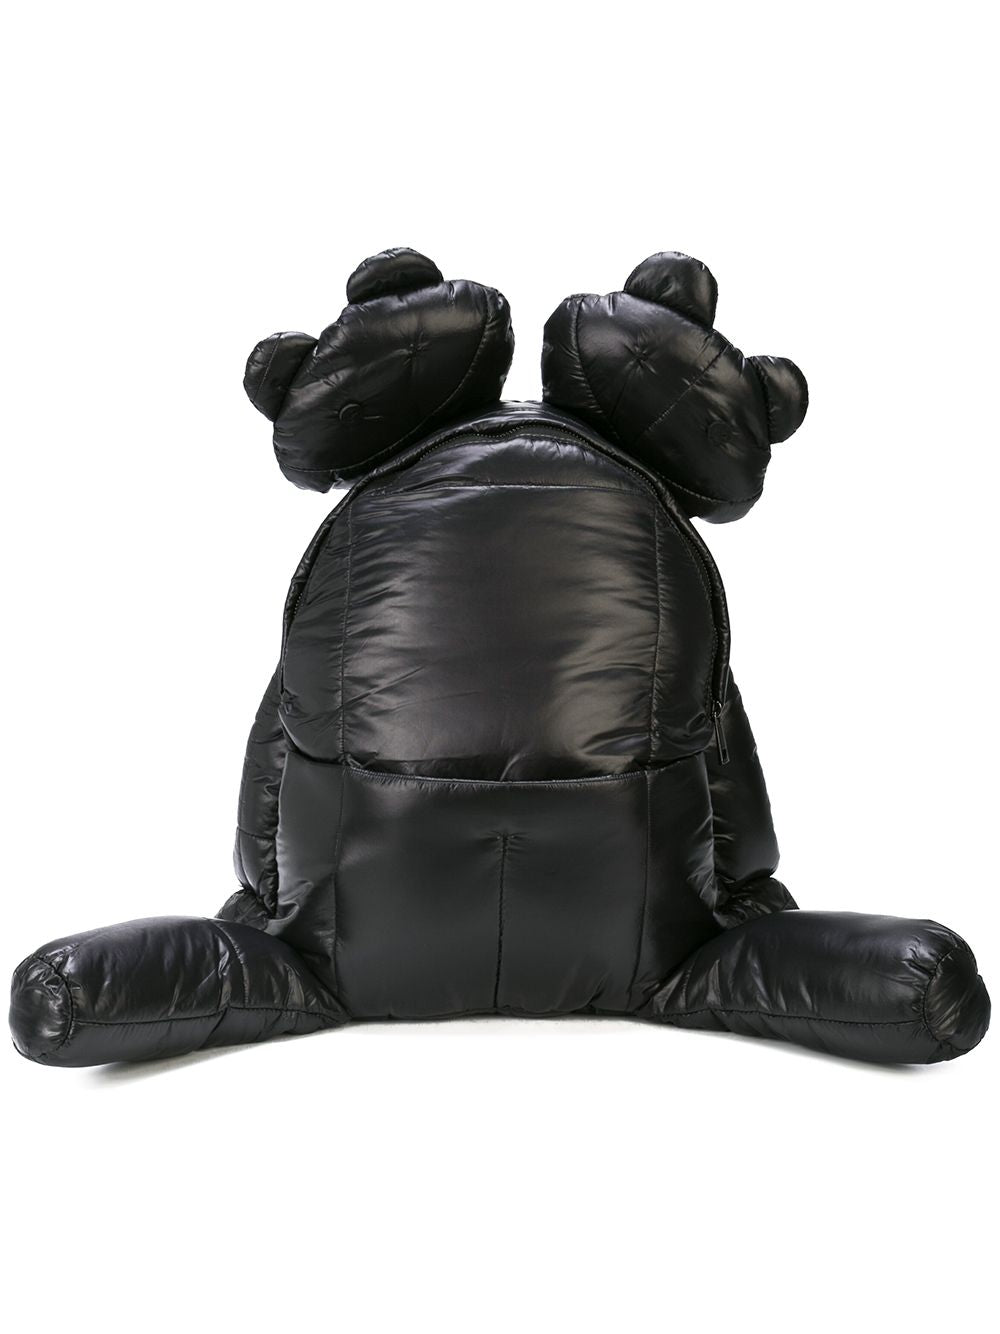 Barbara Bologna Black XL Tw0-Headed Bear Backpack odd92 - 1